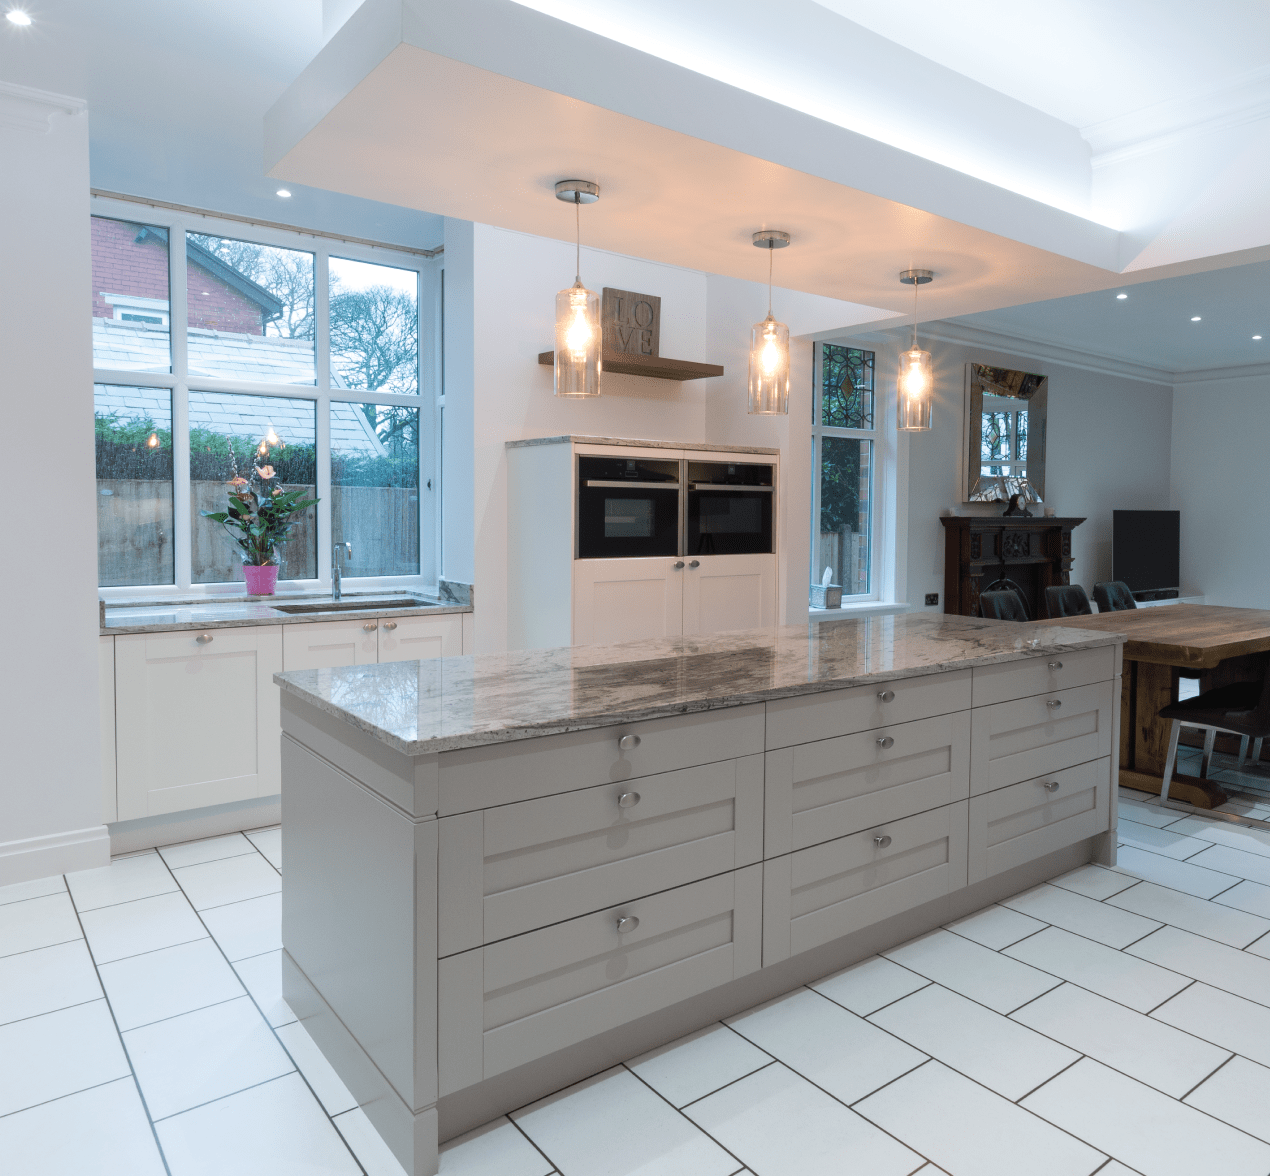 Kitchen Design Centre Audenshaw: Traditional Shaker-Style Kitchen With A Modern Twist For Customers In Rochdale